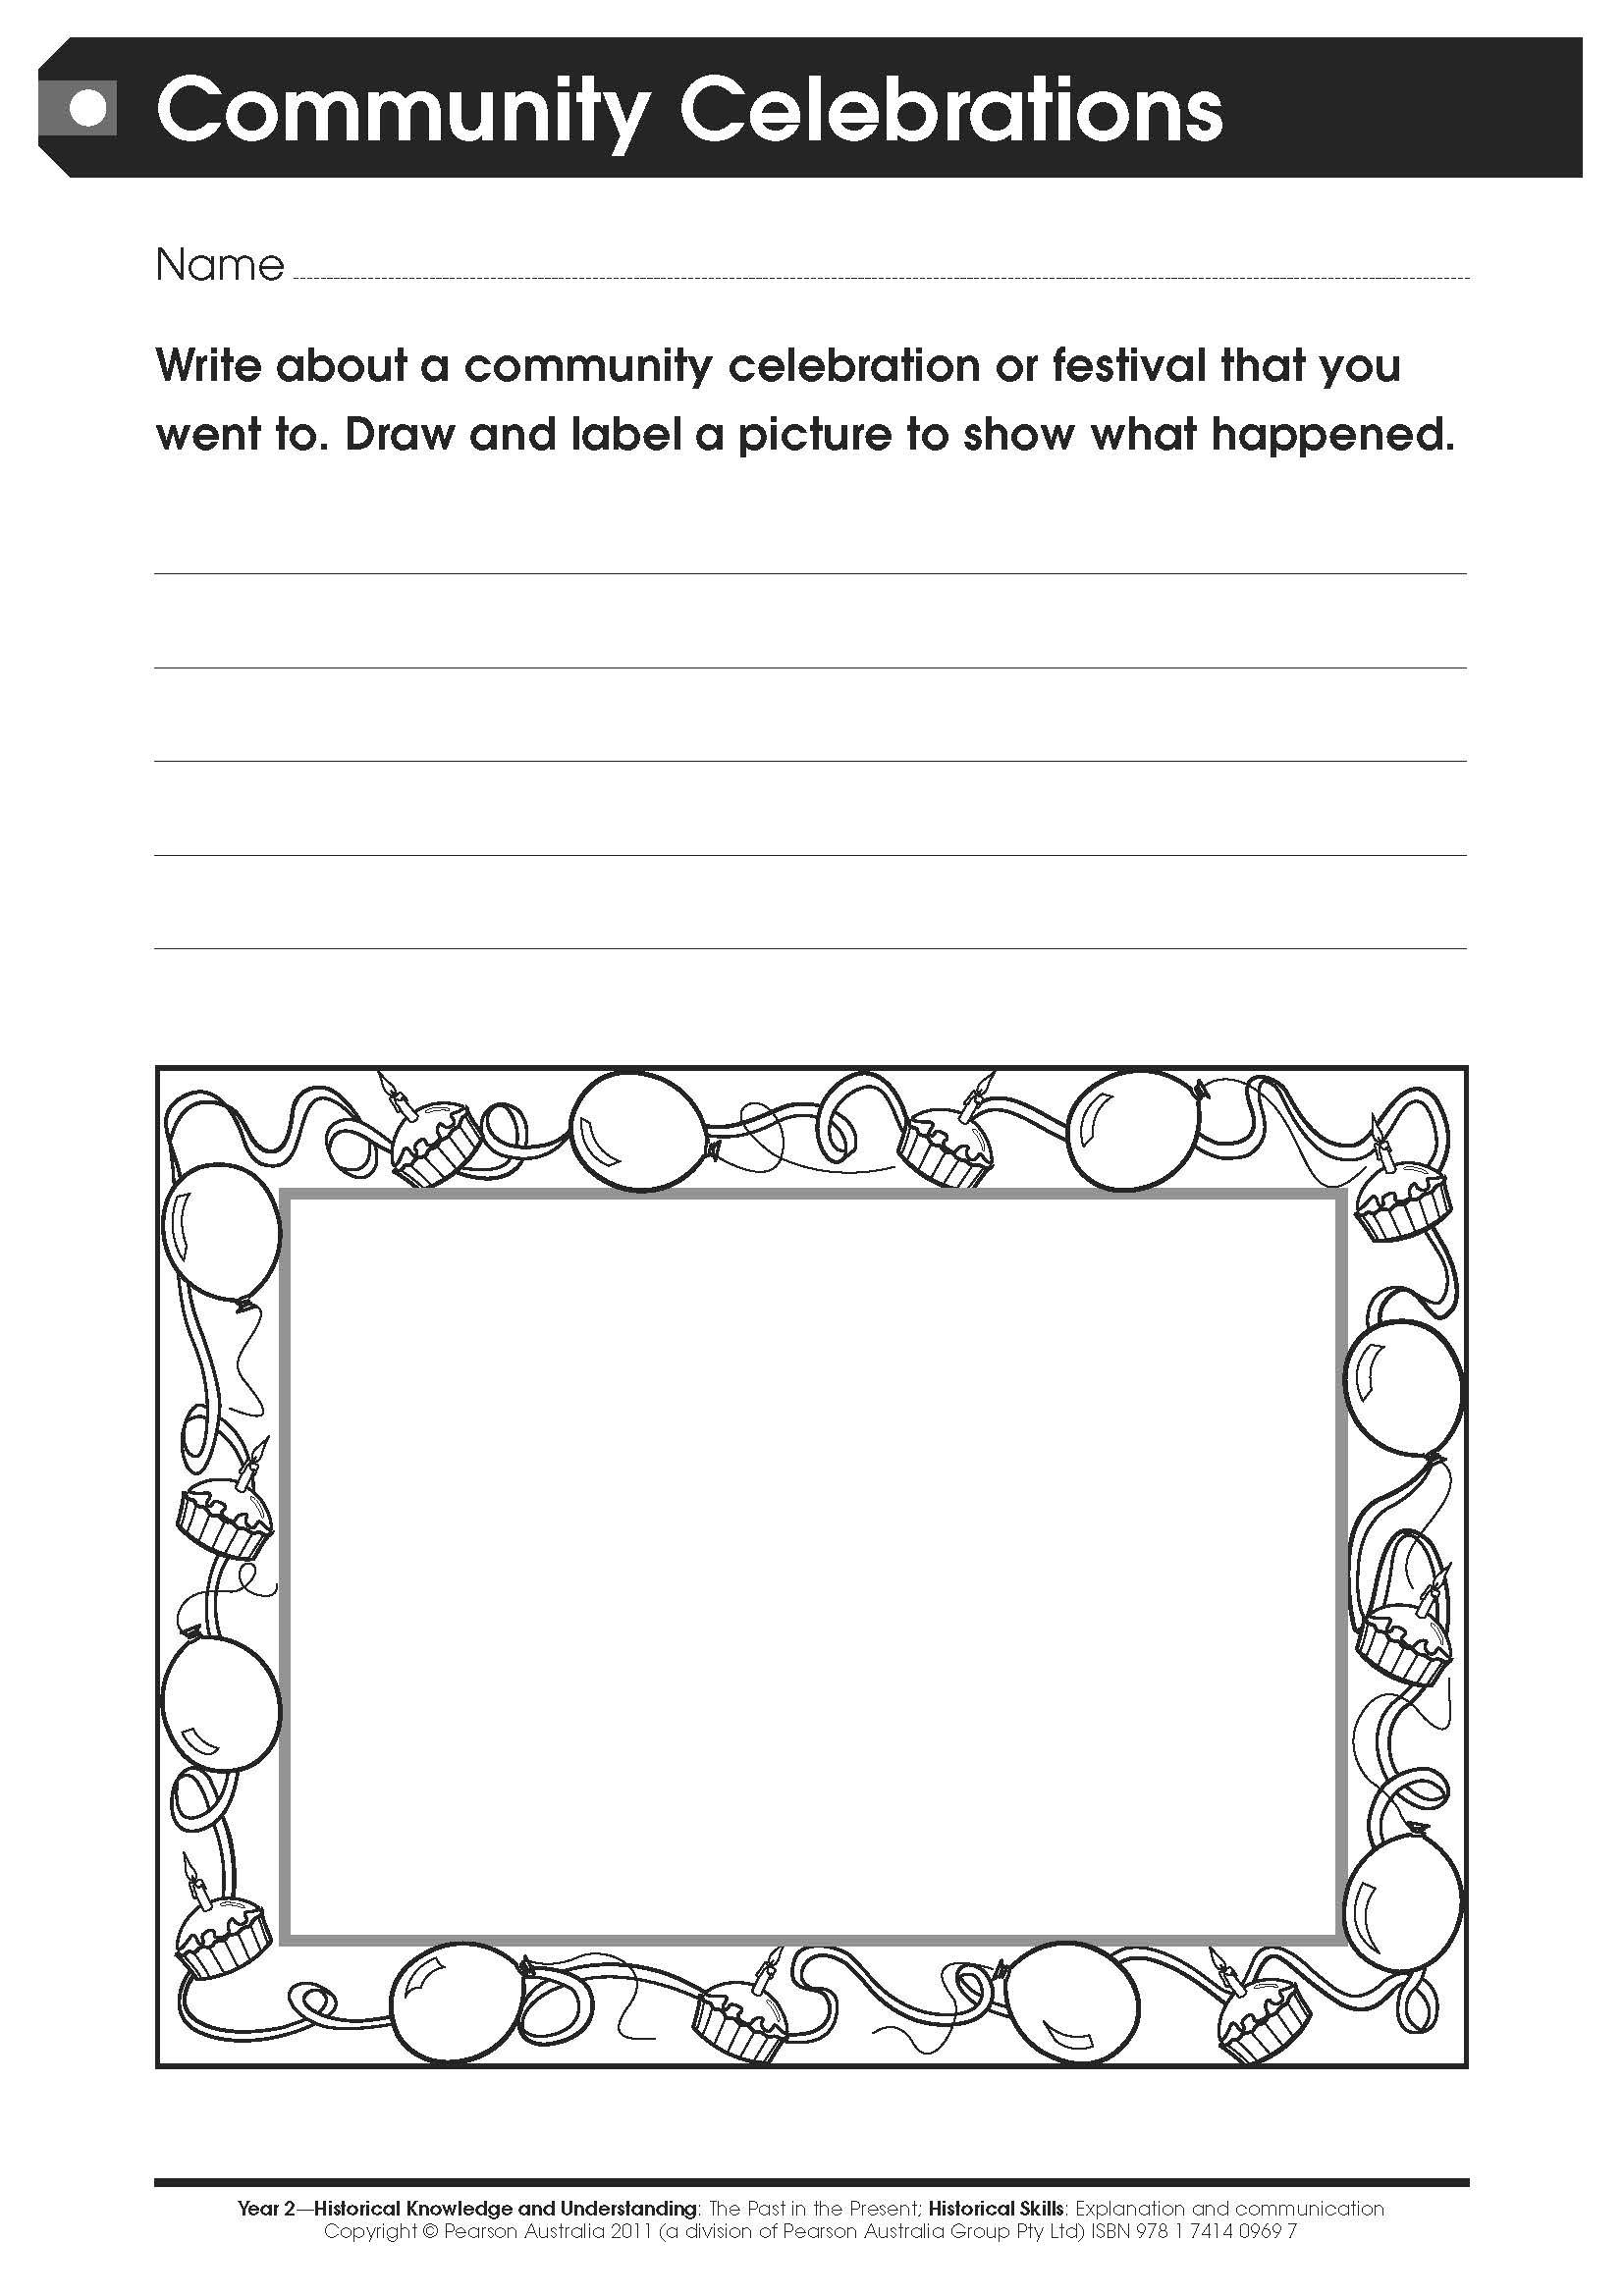 worksheet Pearson Editable Worksheets free worksheet a family celebration for middle primary students community celebrations lower this has been taken from